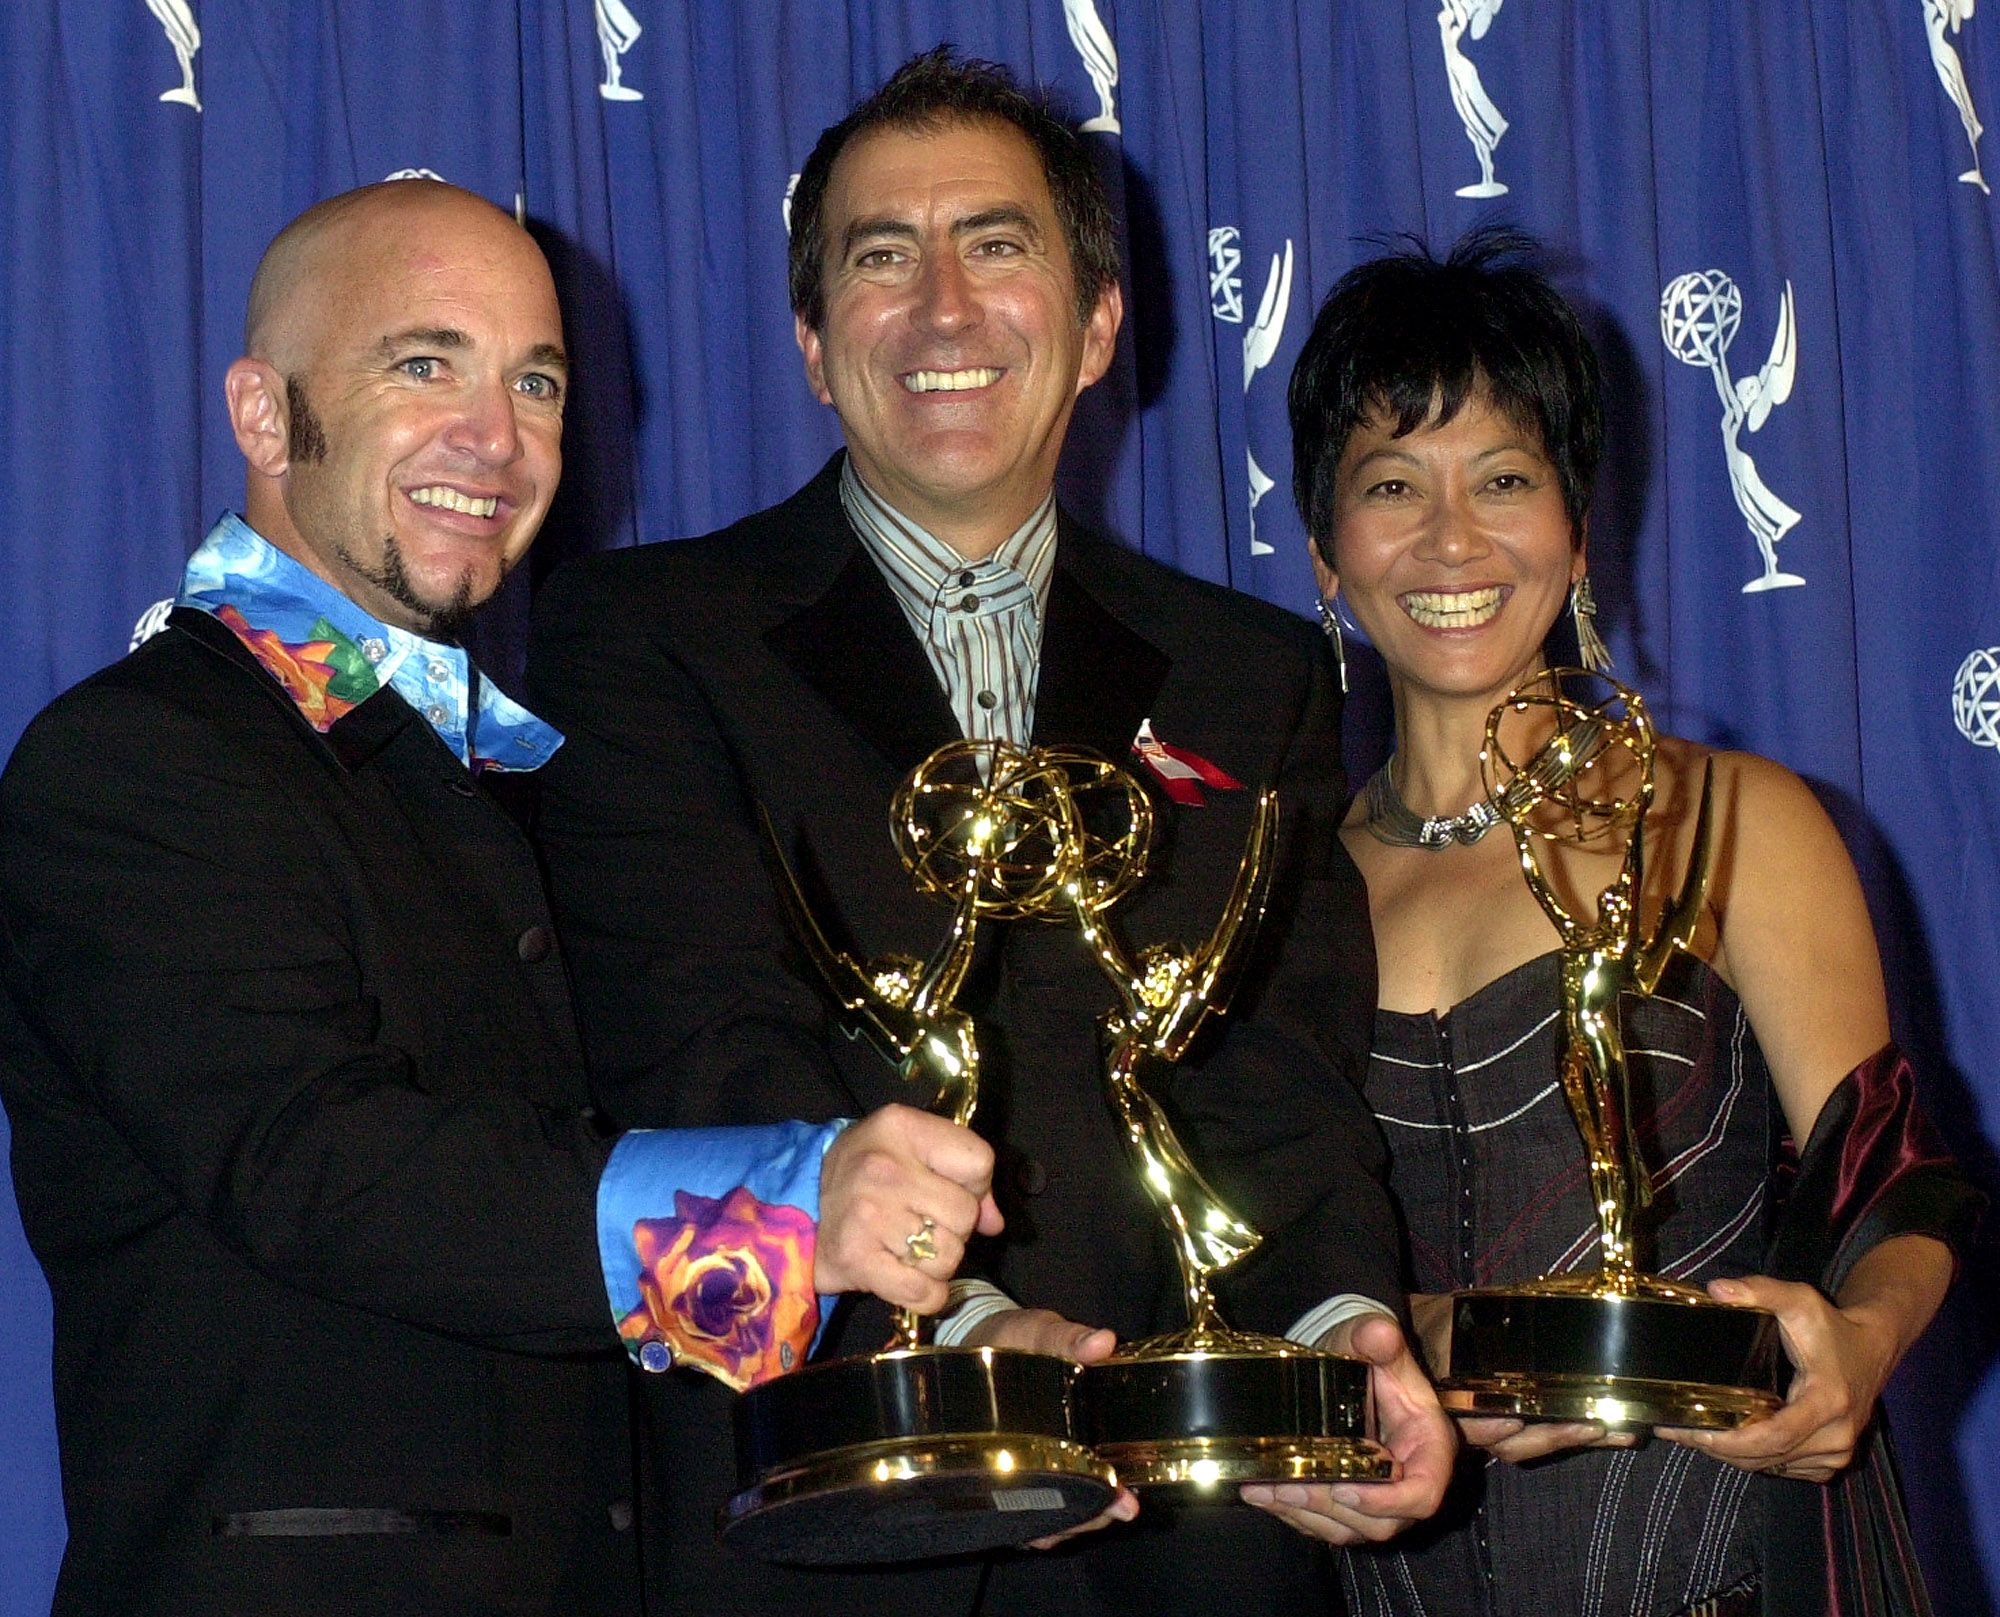 ORTEGA JACK KAWAHARA Celebrating their Emmy win in a tie for Outstanding Choreography are from left, Doug Jack, Kenny Ortega and Sarah Kawahara, for the Opening Ceremony at the 2002 Salt Lake Winter Games, at the 2002 Primetime Creative Arts Emmy Awards, at the Shrine Auditorium in Los AngelesCREATIVE ARTS EMMYS, LOS ANGELES, USA